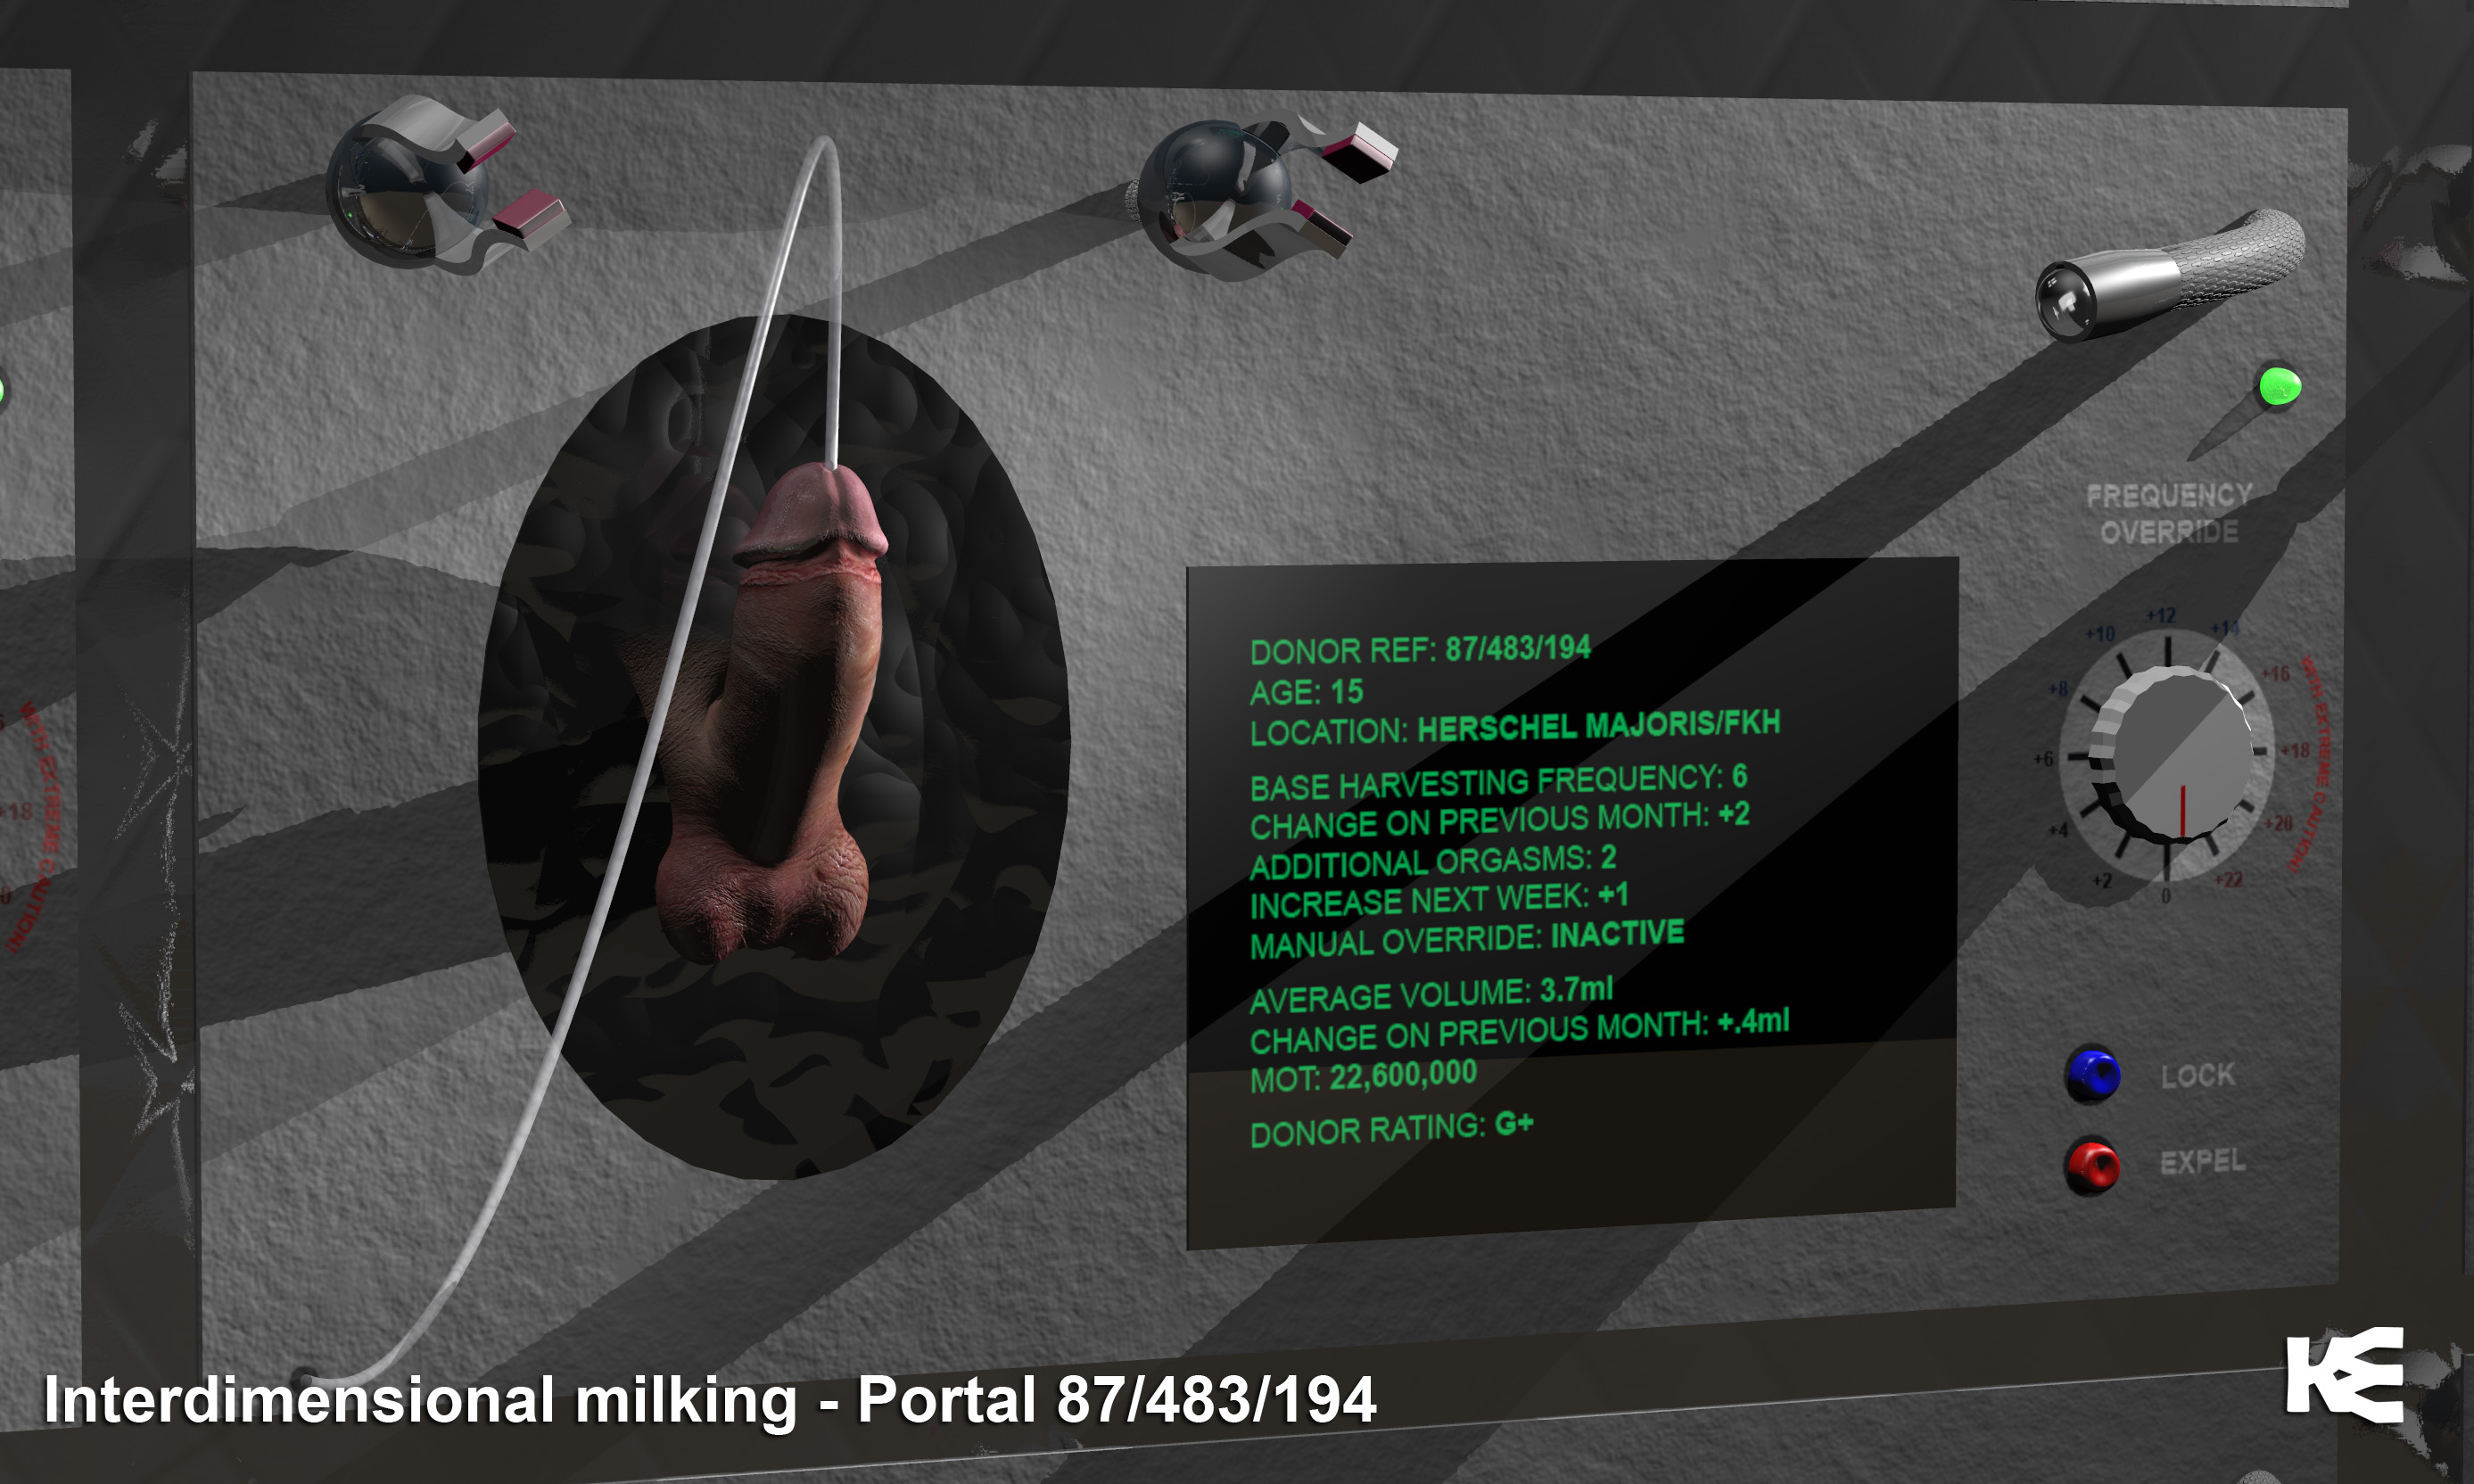 Interdimensional Milking